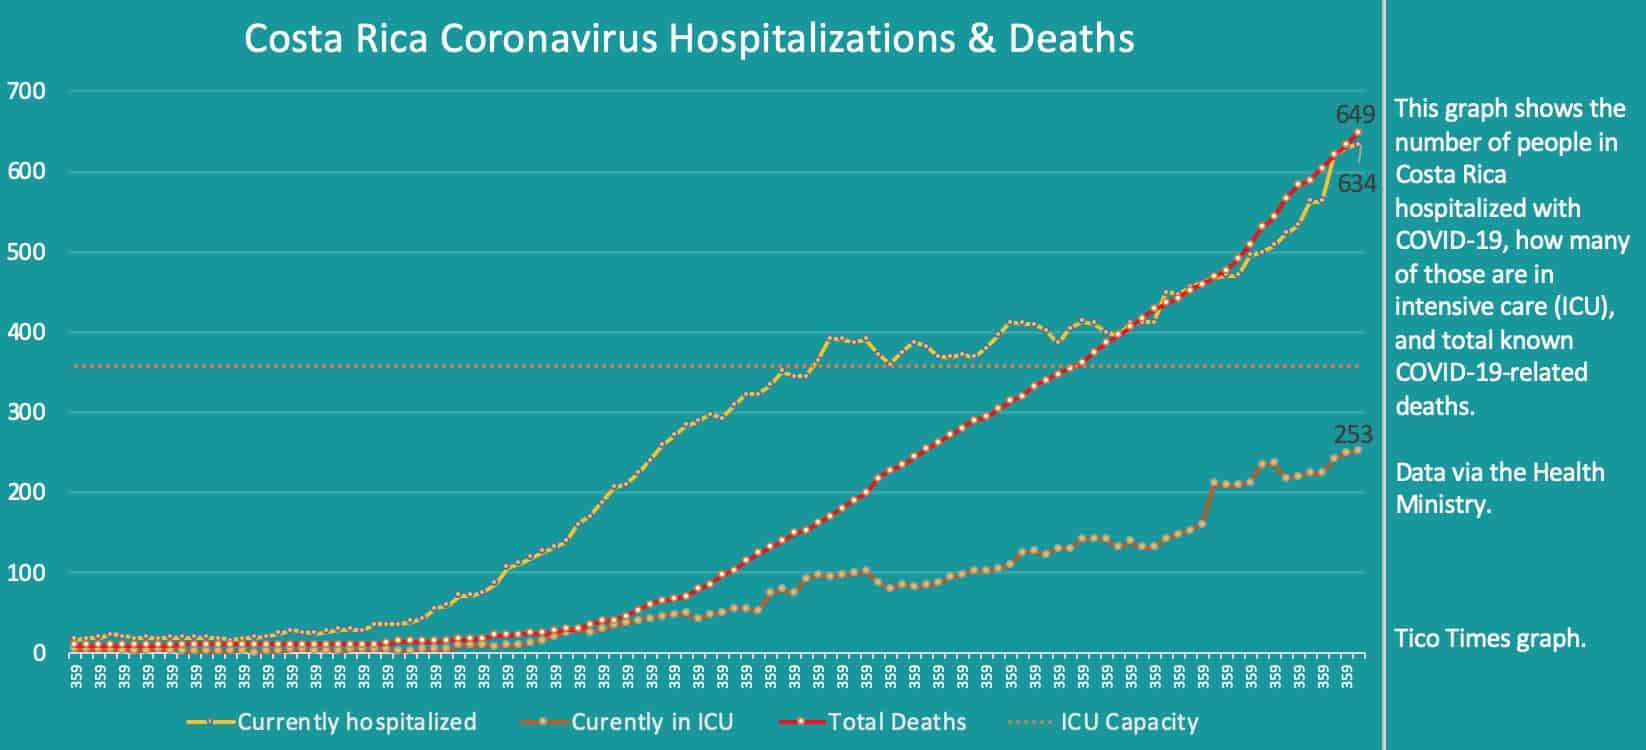 Costa Rica coronavirus hospitalizations and deaths on September 16, 2020